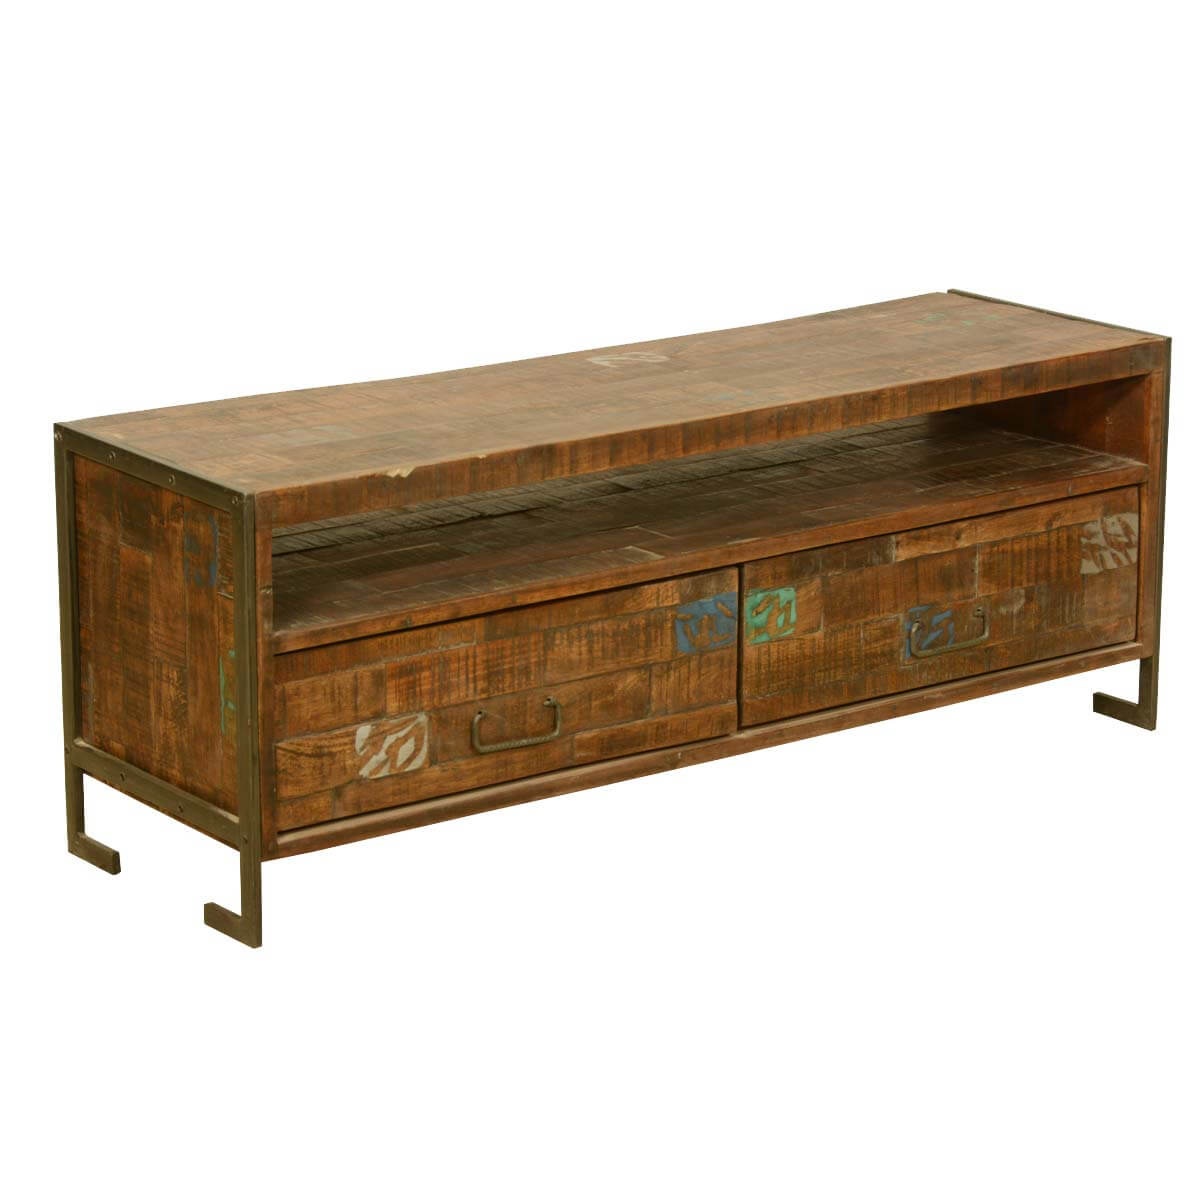 52 Reclaimed Wood Industrial Rustic Media Console Tv Stand: rustic tv stands